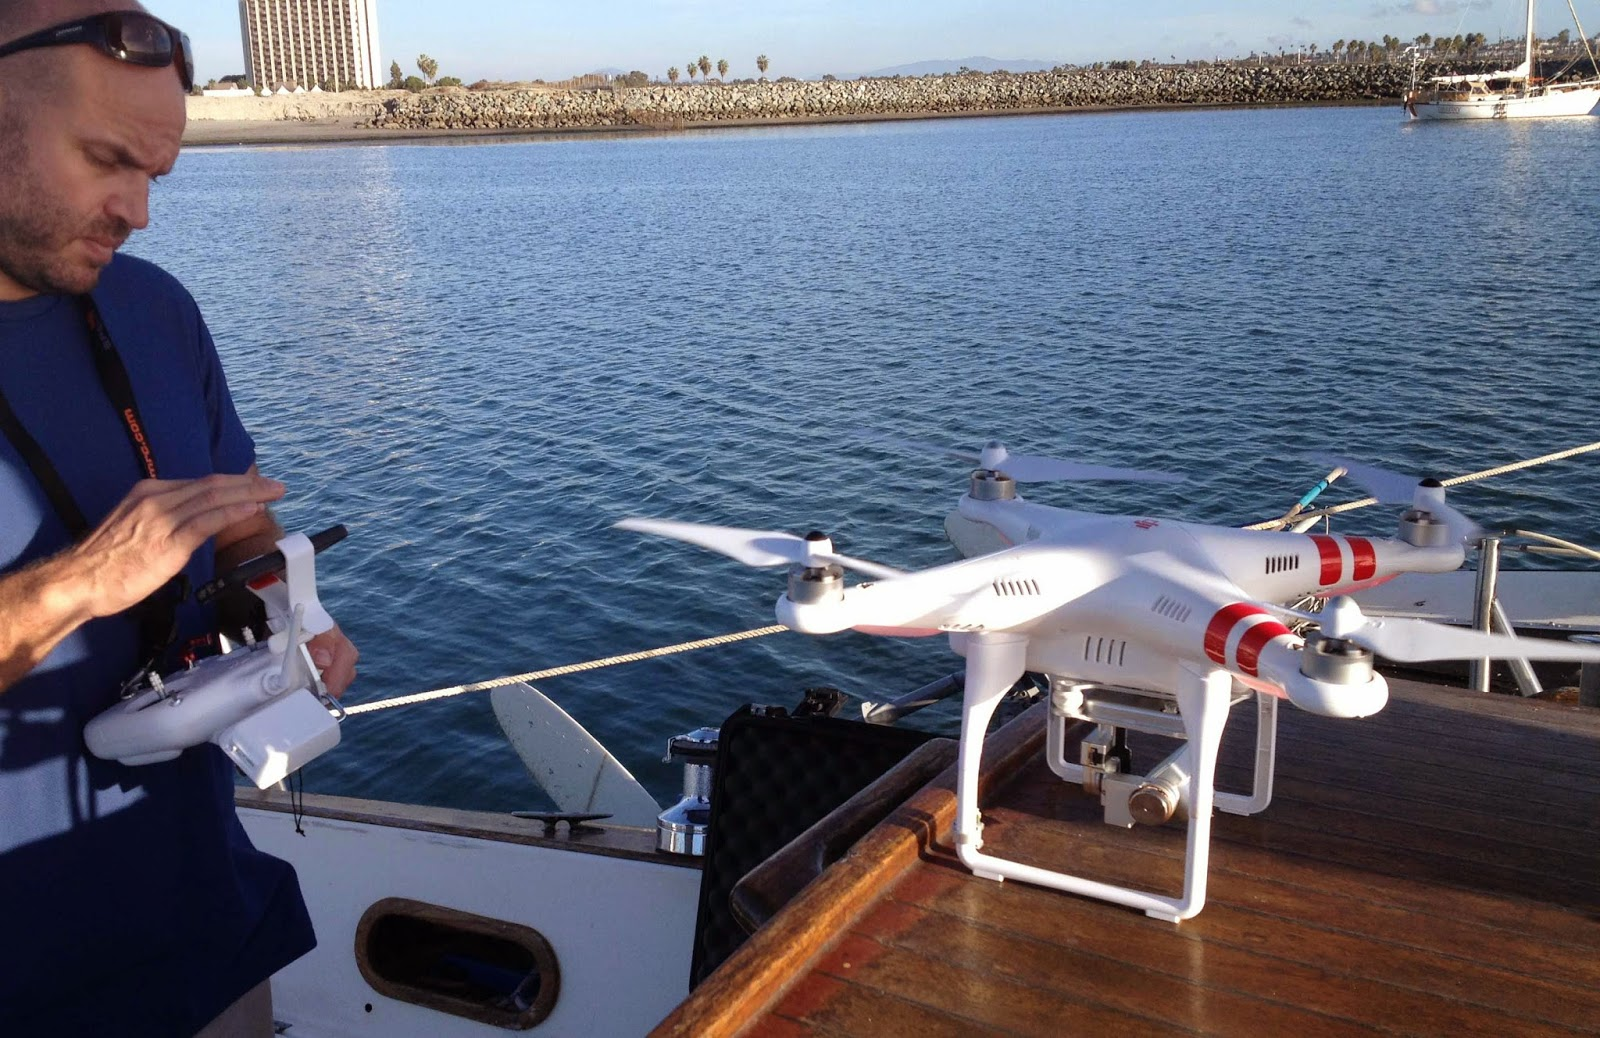 learn to fly a drone from a boat